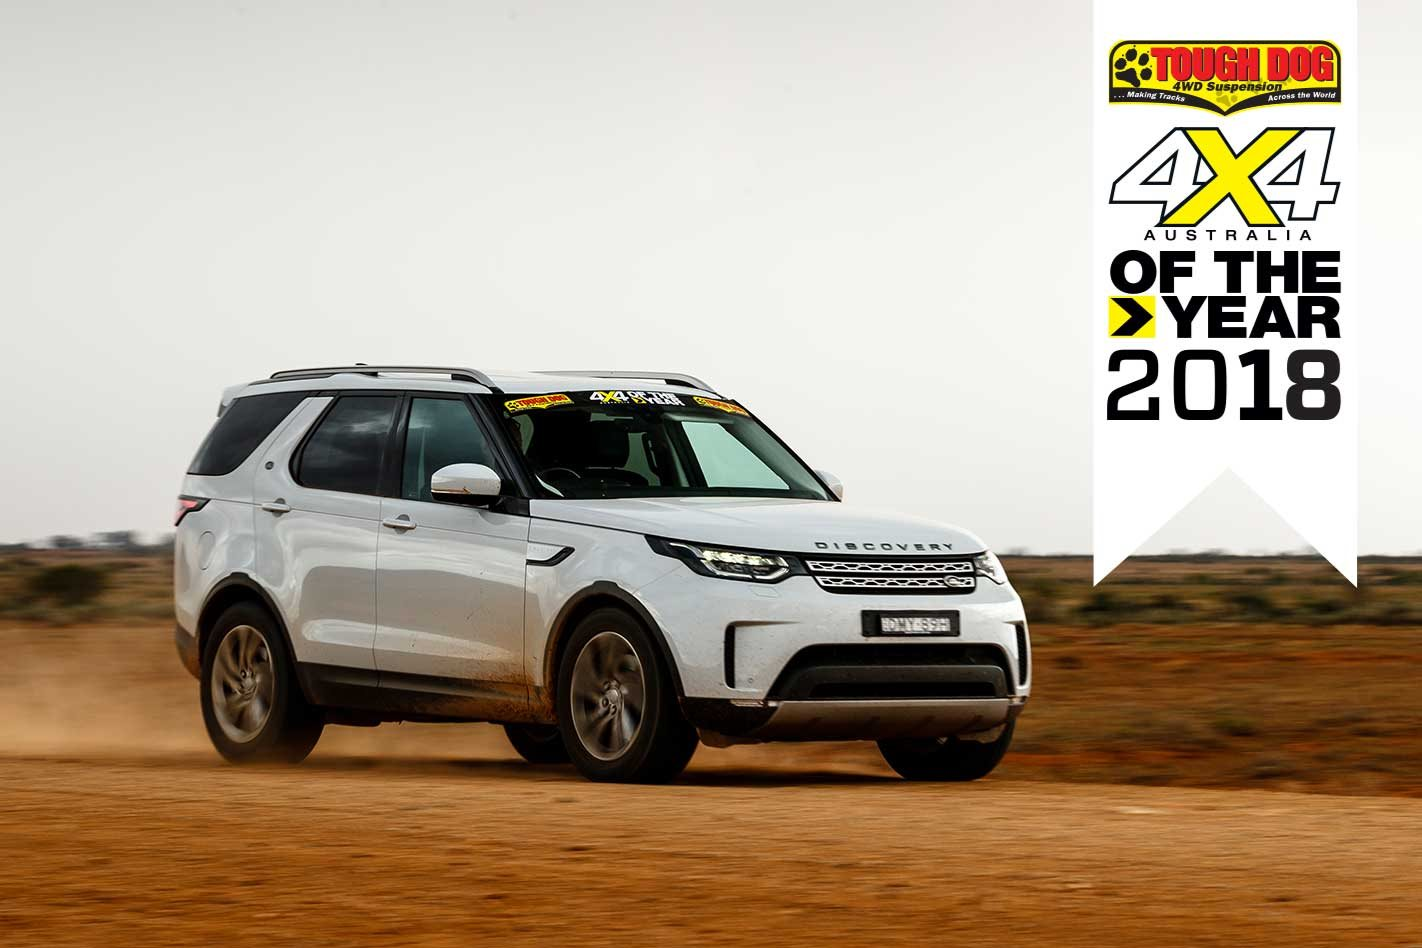 4x4 Of The Year 2018 1 Land Rover Discovery Sd4 If Theres A Lot Luxury About Bit Sportiness Too Especially For Something So Big That Thank Its Trim Weight